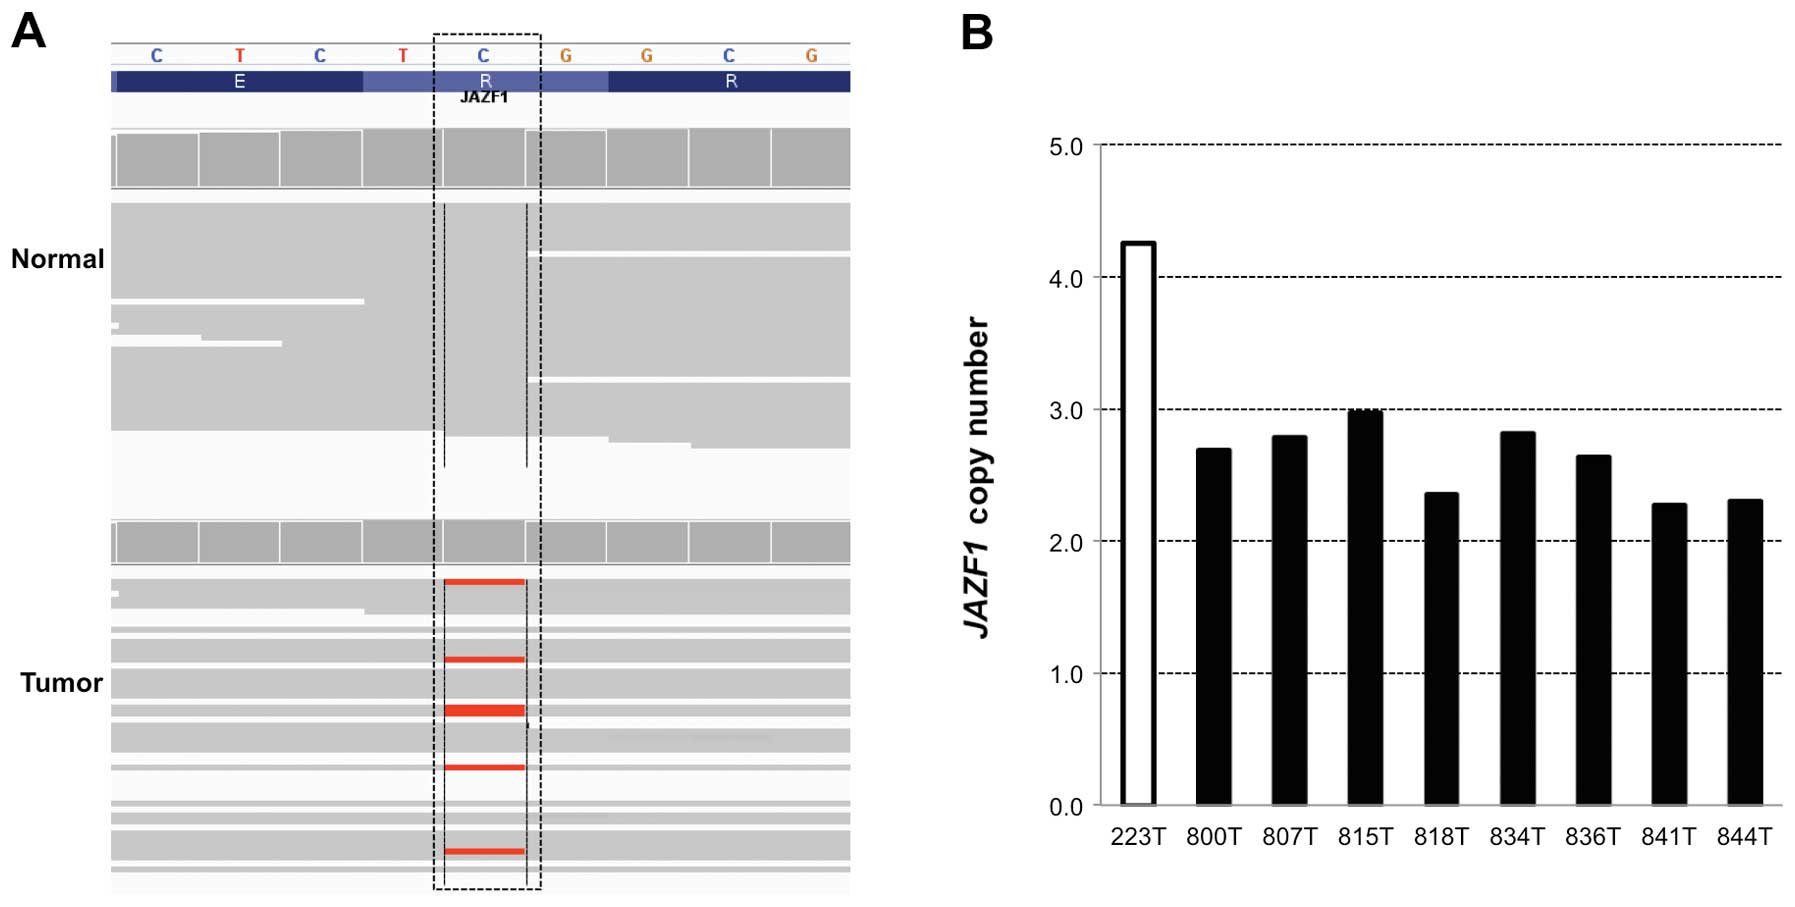 Comprehensive Genomic Analyses Of A Metastatic Colon Cancer To The Lung By Whole Exome Sequencing And Gene Expression Analysis